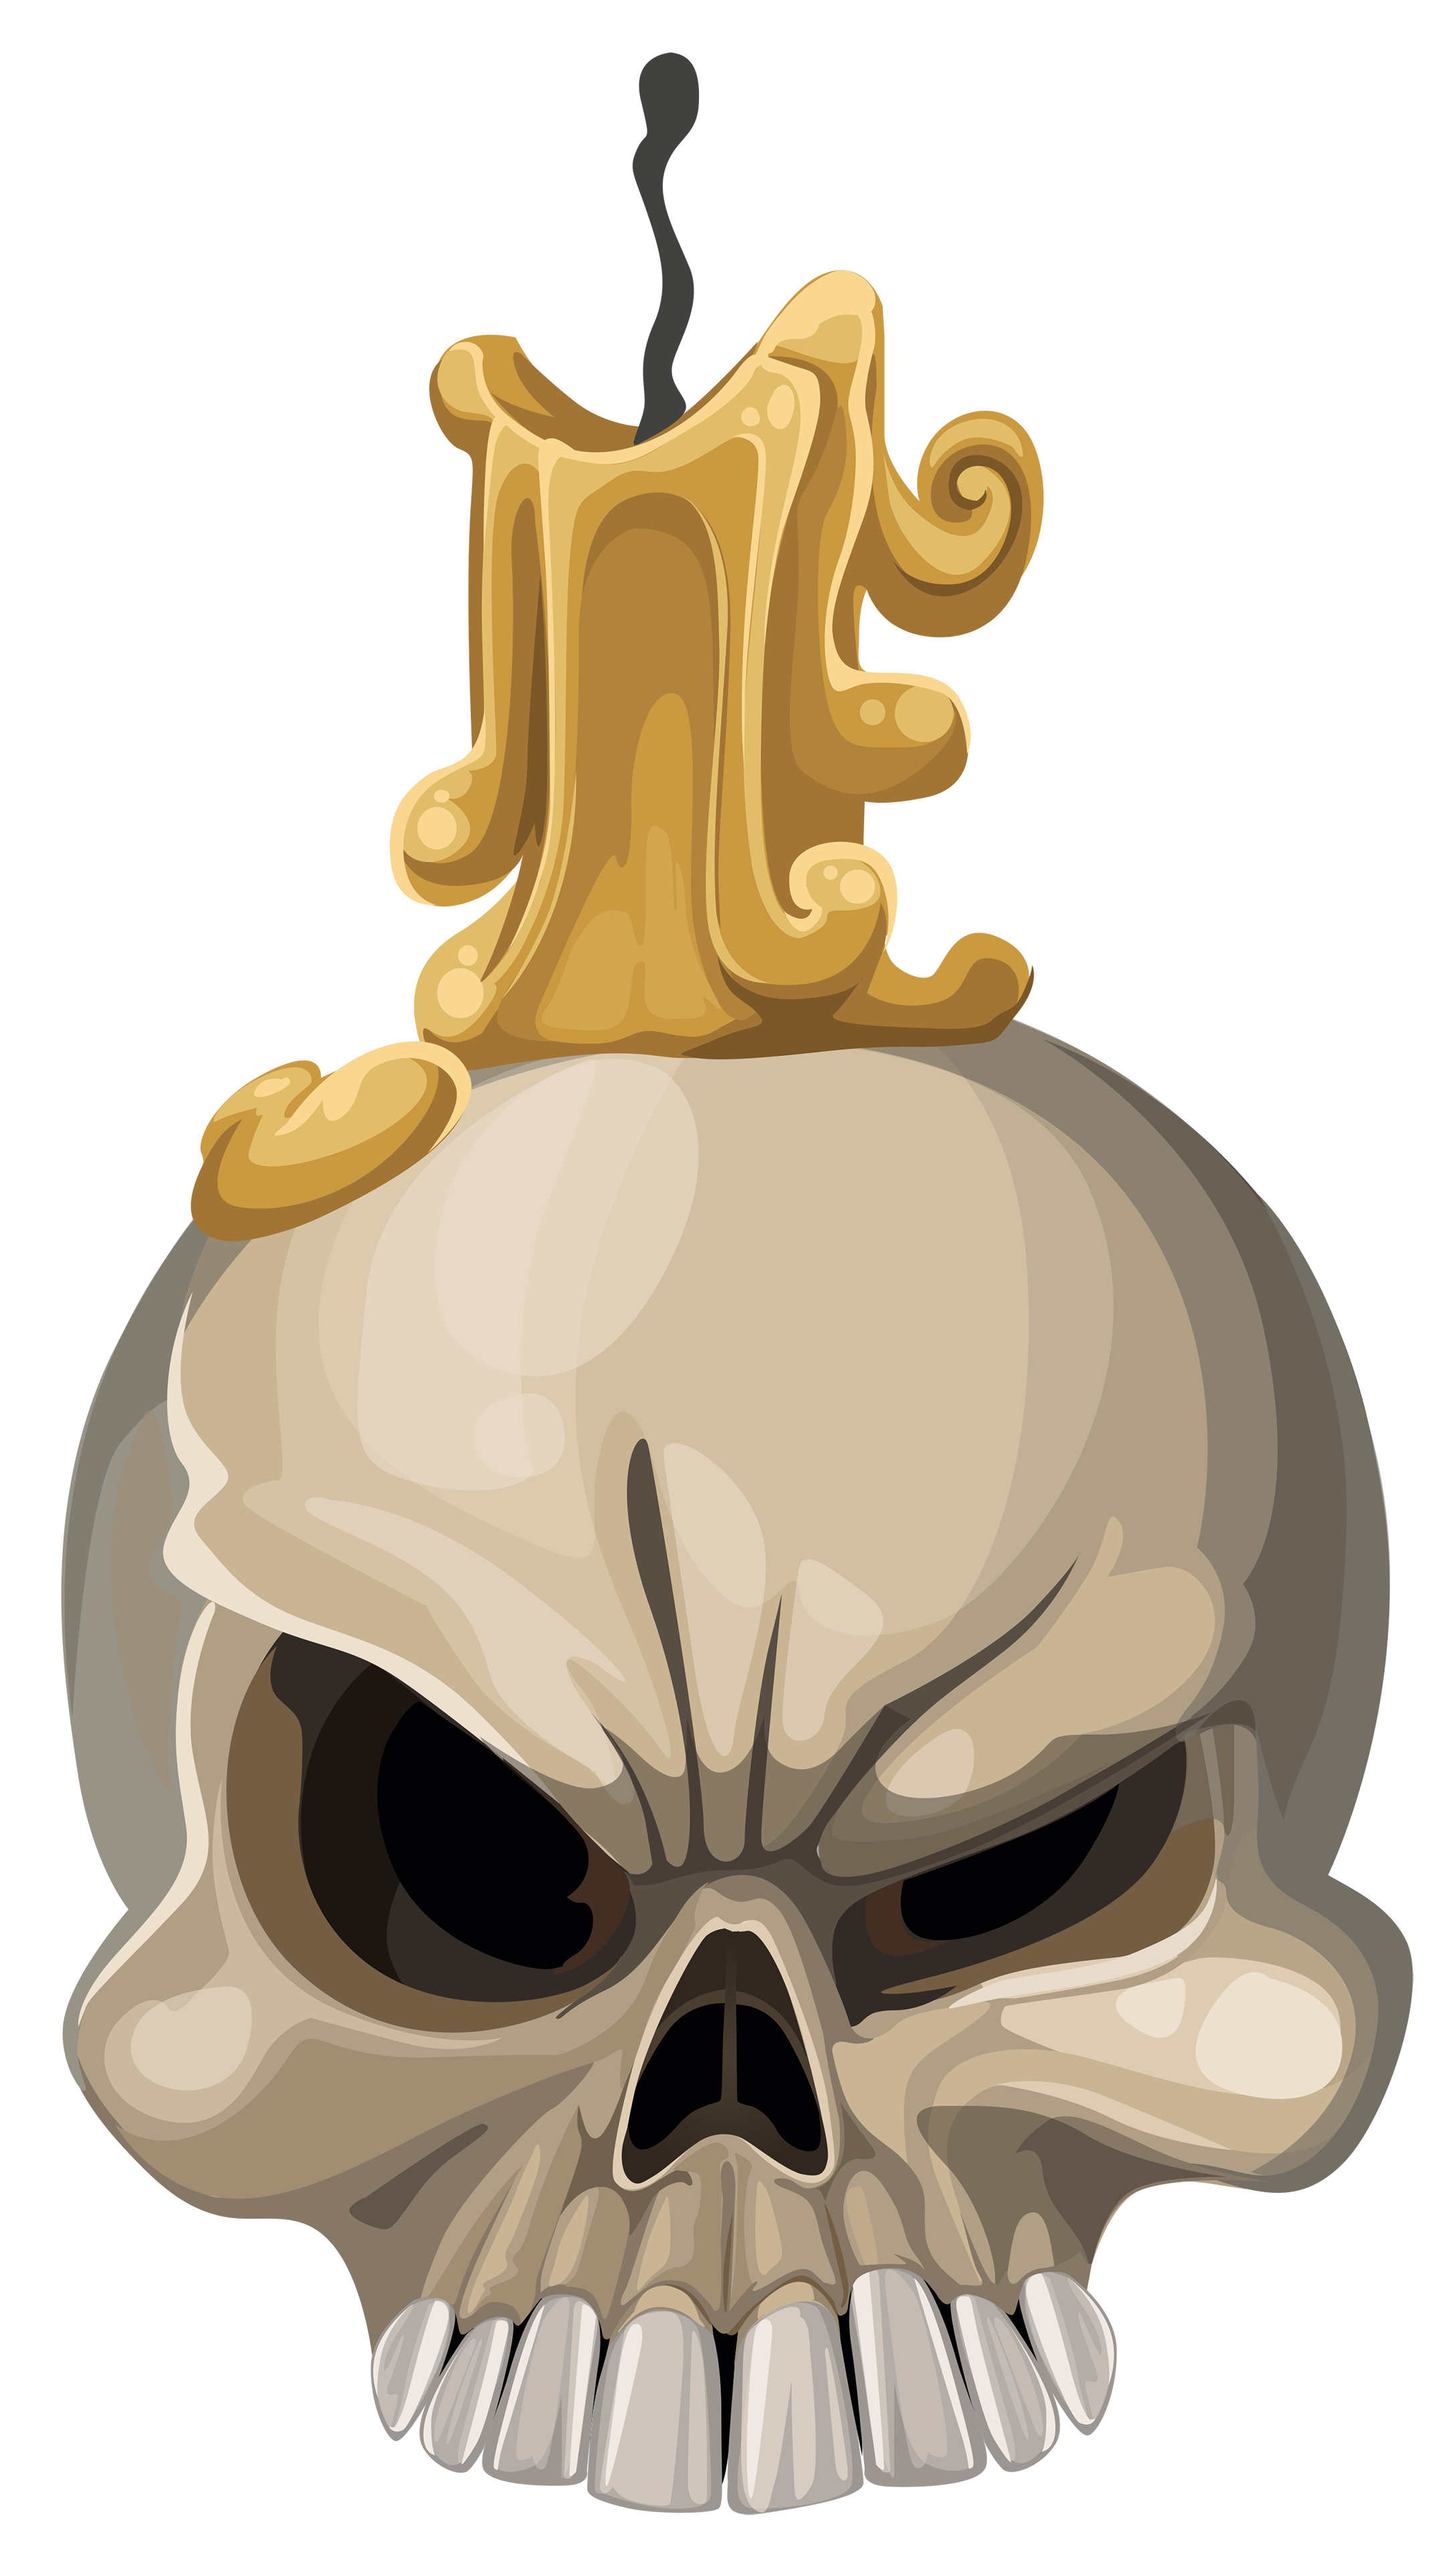 Halloween with candle png. Clipart rock skull